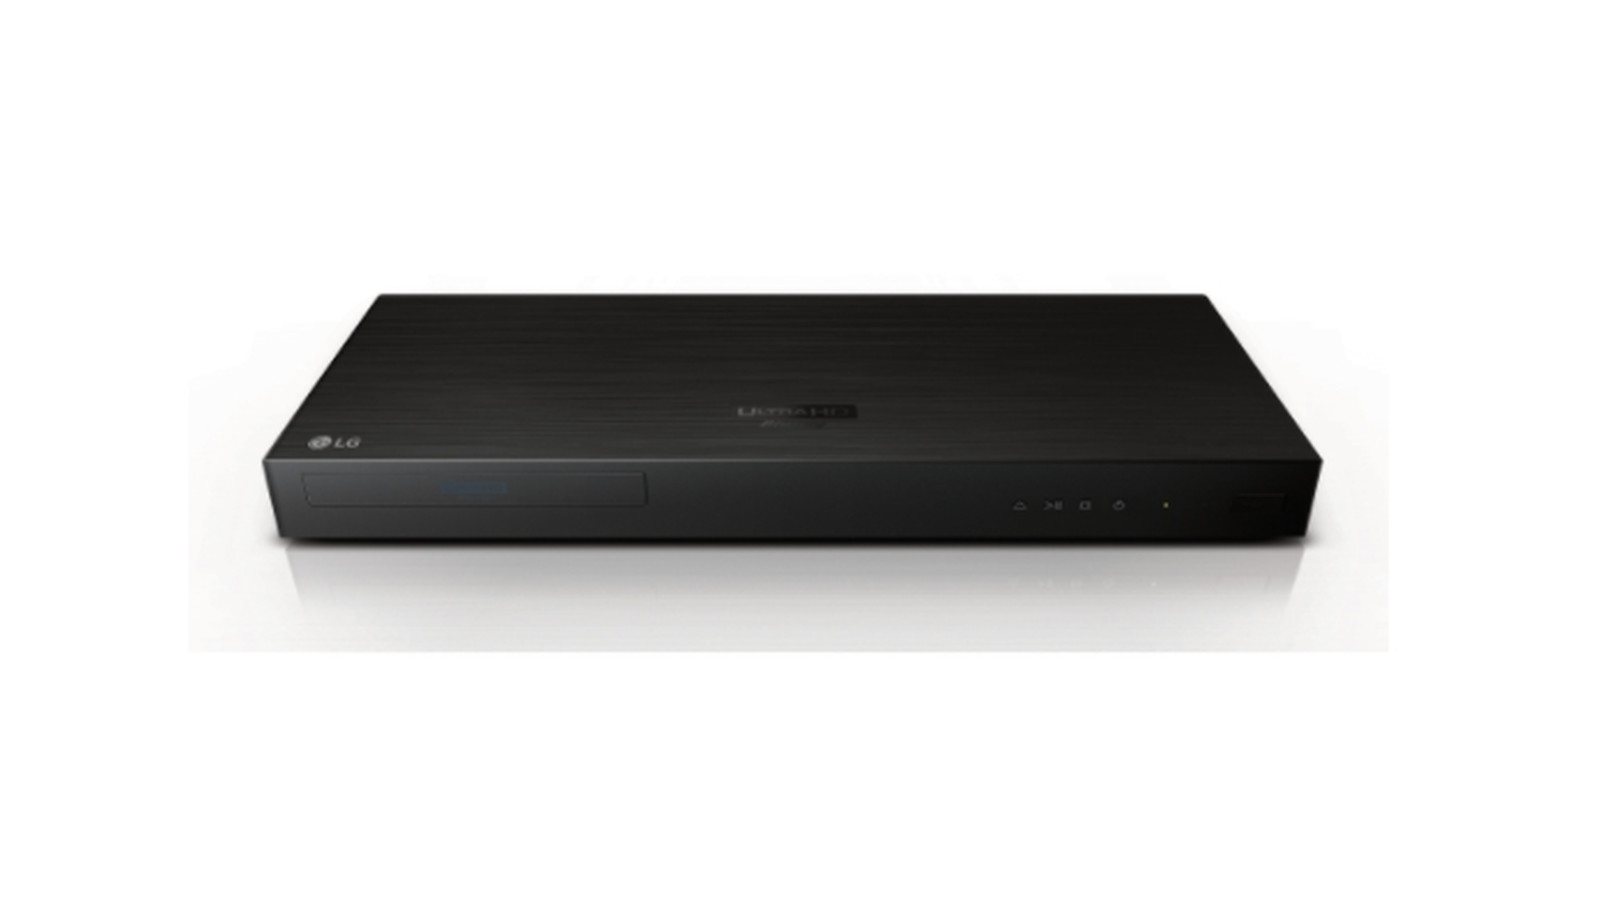 LG's 4K Blu-ray player supports Dolby Vision for better HDR